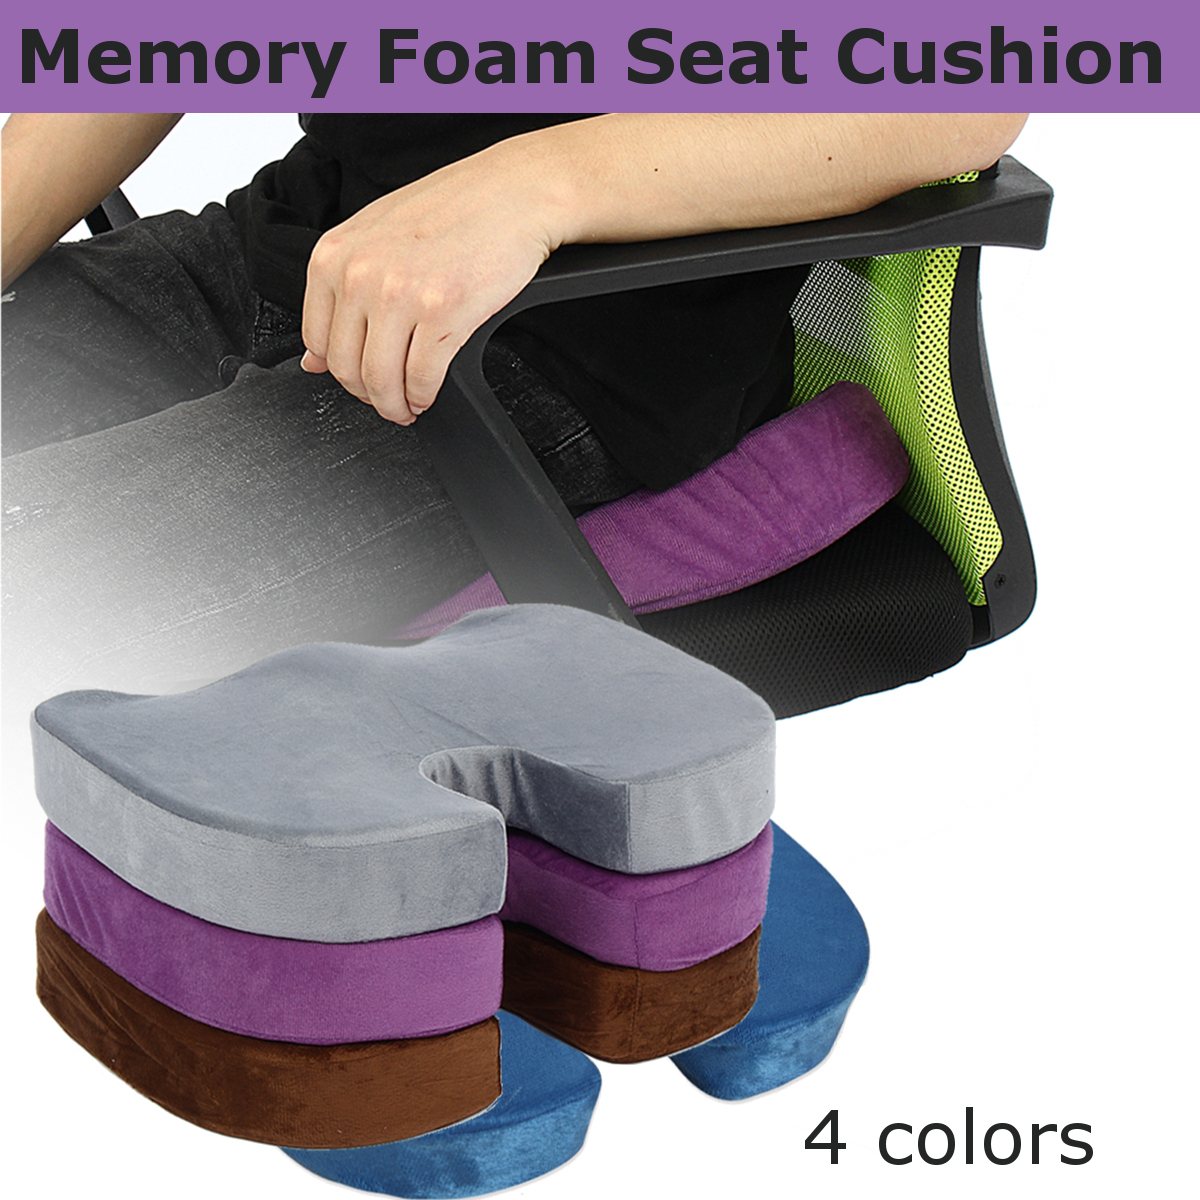 Seat Cushion Memory Foam Chair Anti Hemorrhoid Coccyx Orthopedic Office Home Car Travel Seat Mat Lumbar Pain Relief Massage|Cushion| |  - title=